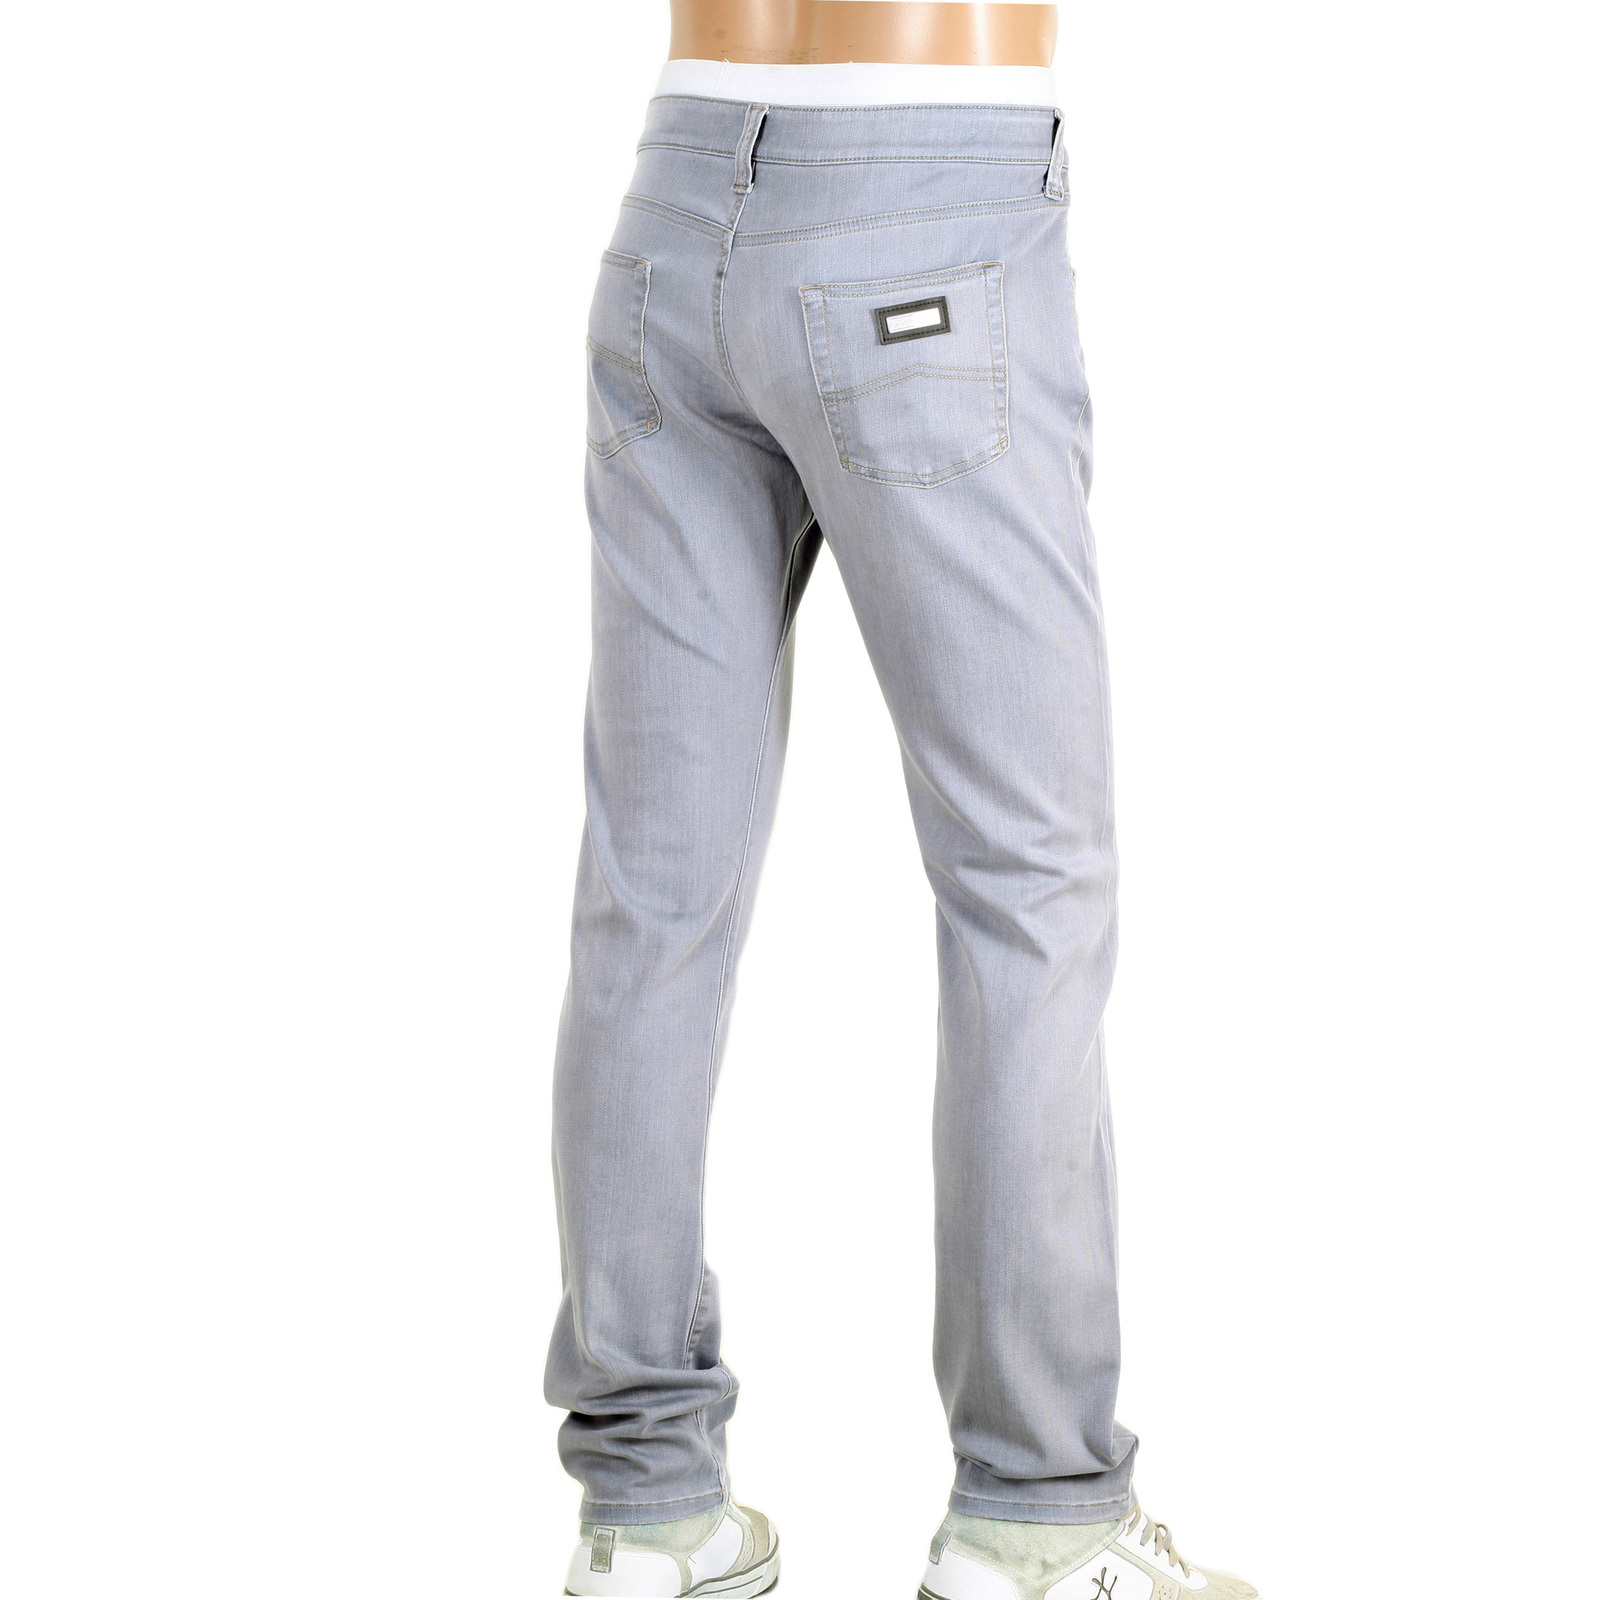 mens low rise jeans in grey by armani collezioni london. Black Bedroom Furniture Sets. Home Design Ideas